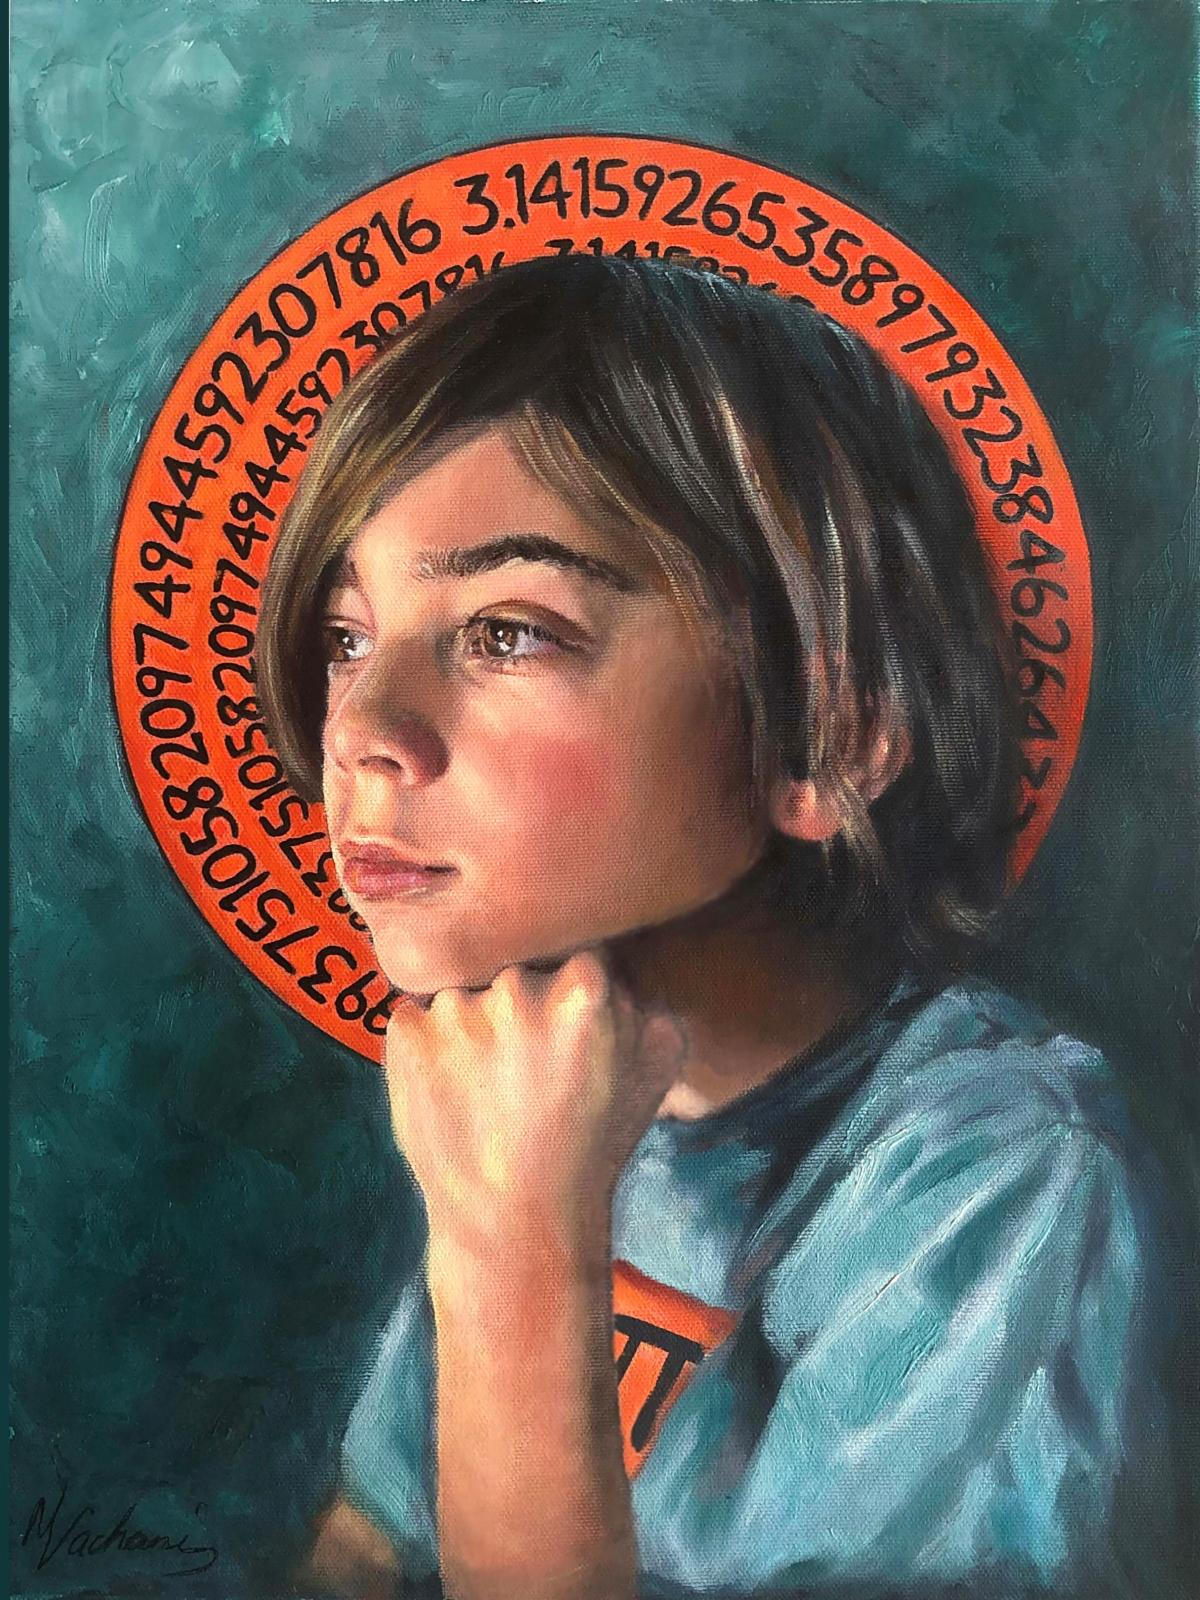 """Nancy Vachani of Moraga's Pi Day at the Exploratorium, a 20"""" x 16.25 oil painting #635, is on display at The de Young Open in Room 6 through Jan. 3, 2021."""